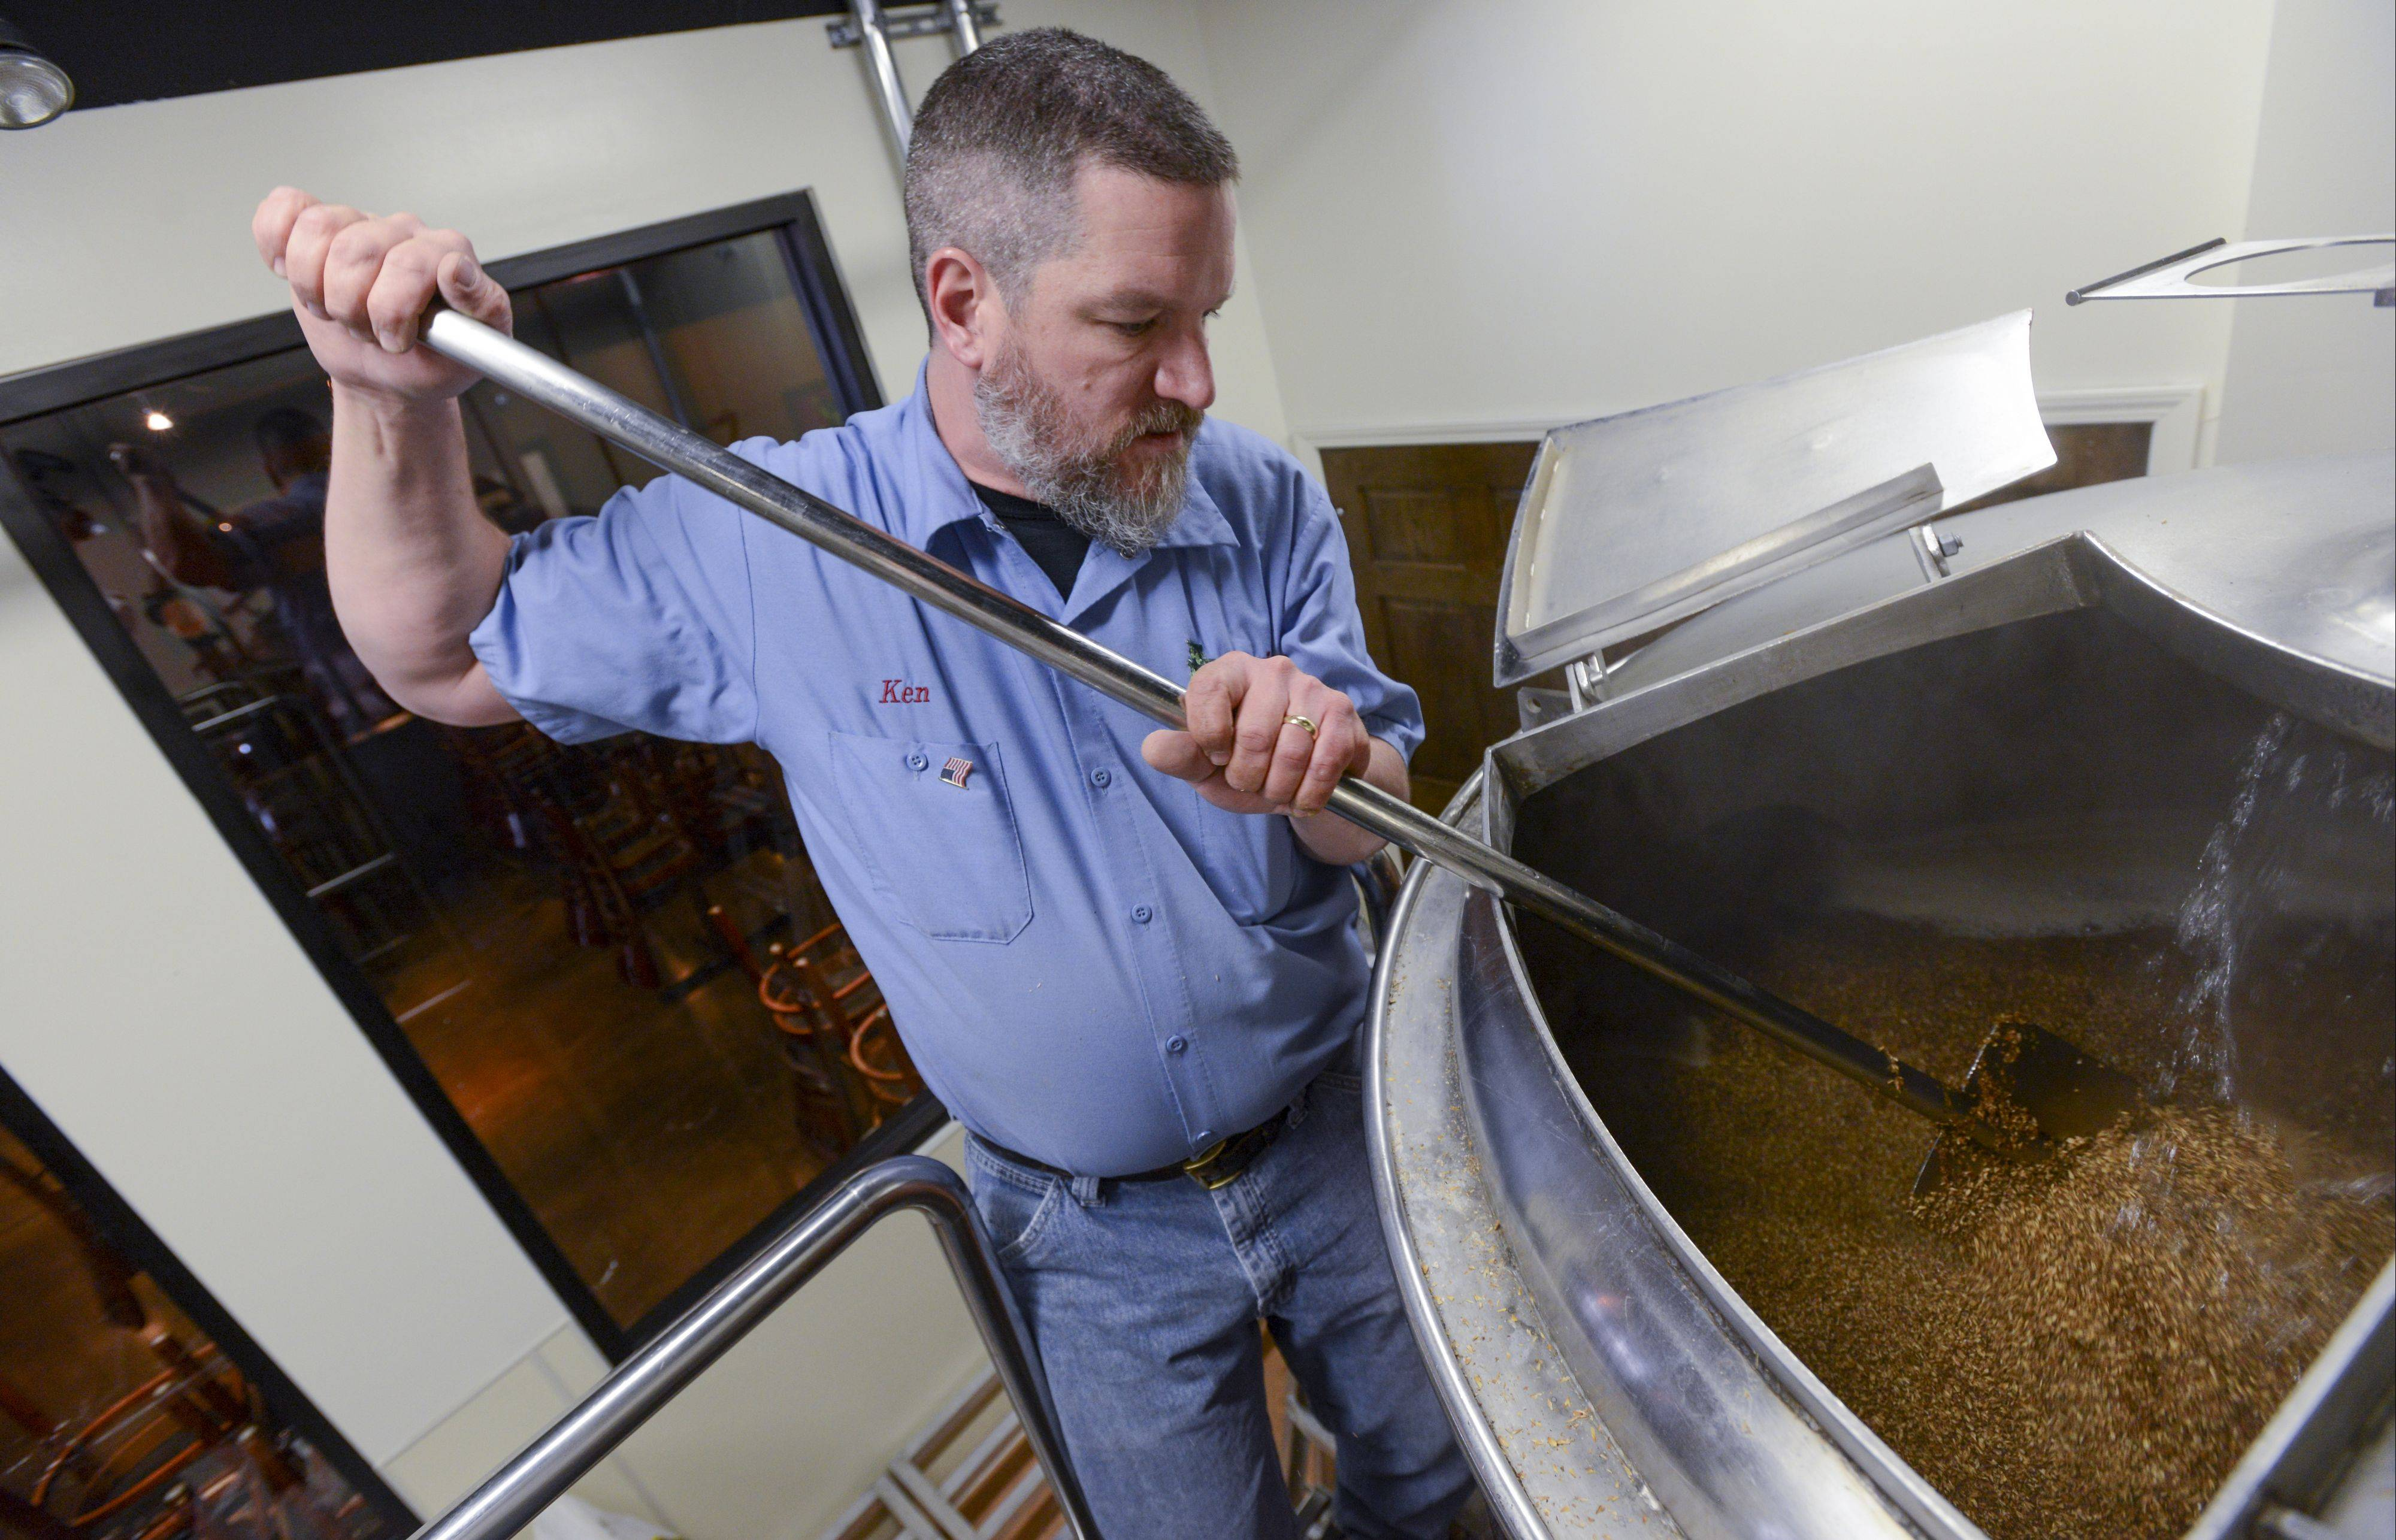 Brewmaster Ken McMullen of Naperville stirs the mash as he brews up a batch of IBA, India Brown Ale at the Hopvine Brewing Company in Aurora. During the mash process, various grains are steeped in hot water to extract the fermentable sugars required for fermentation.